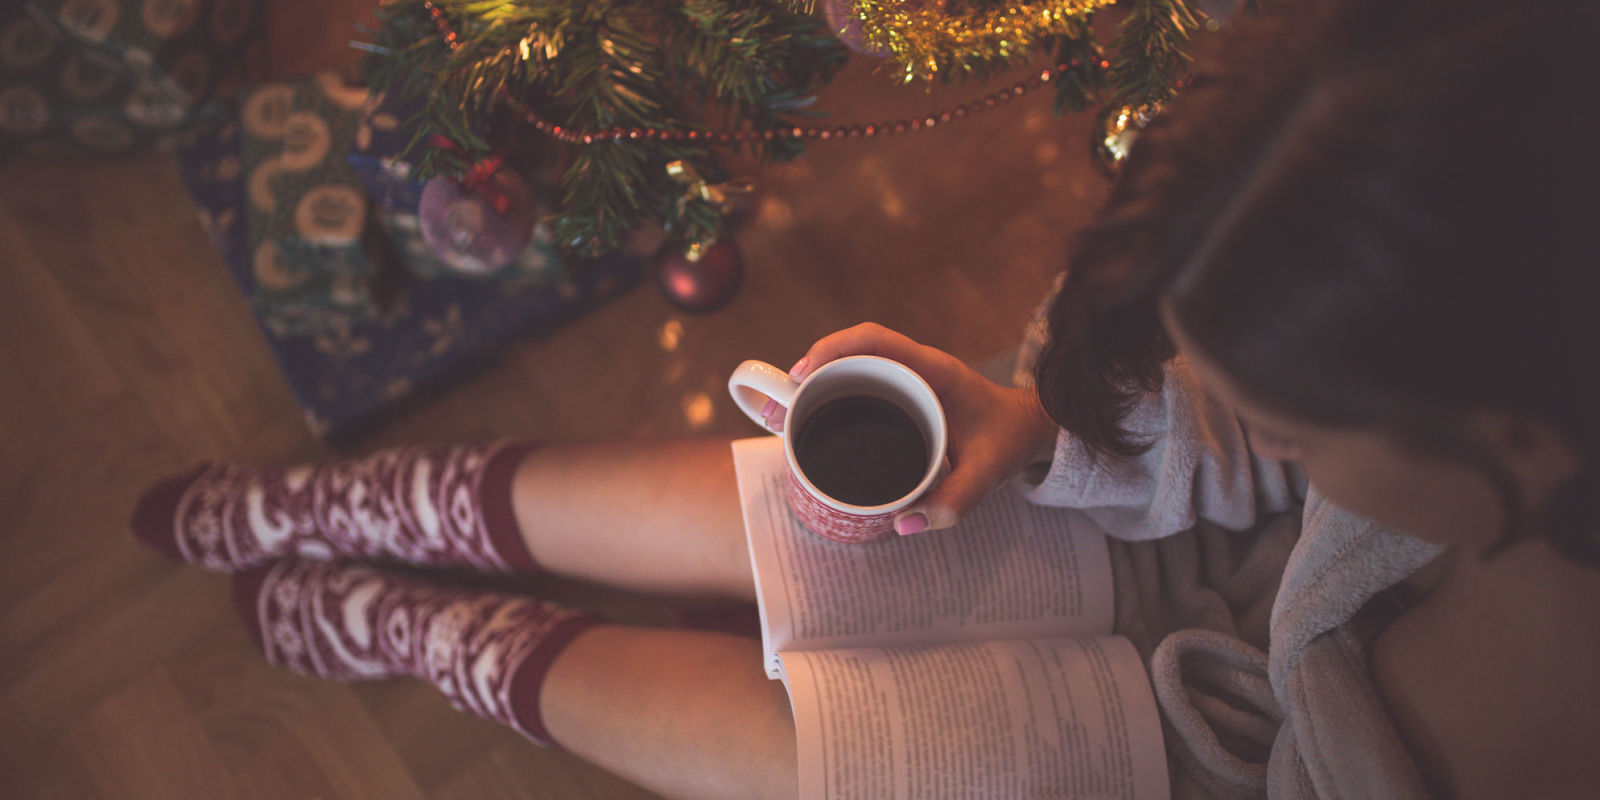 Why Icelanders Spend Every Christmas Eve Reading Books and Drinking Cocoa